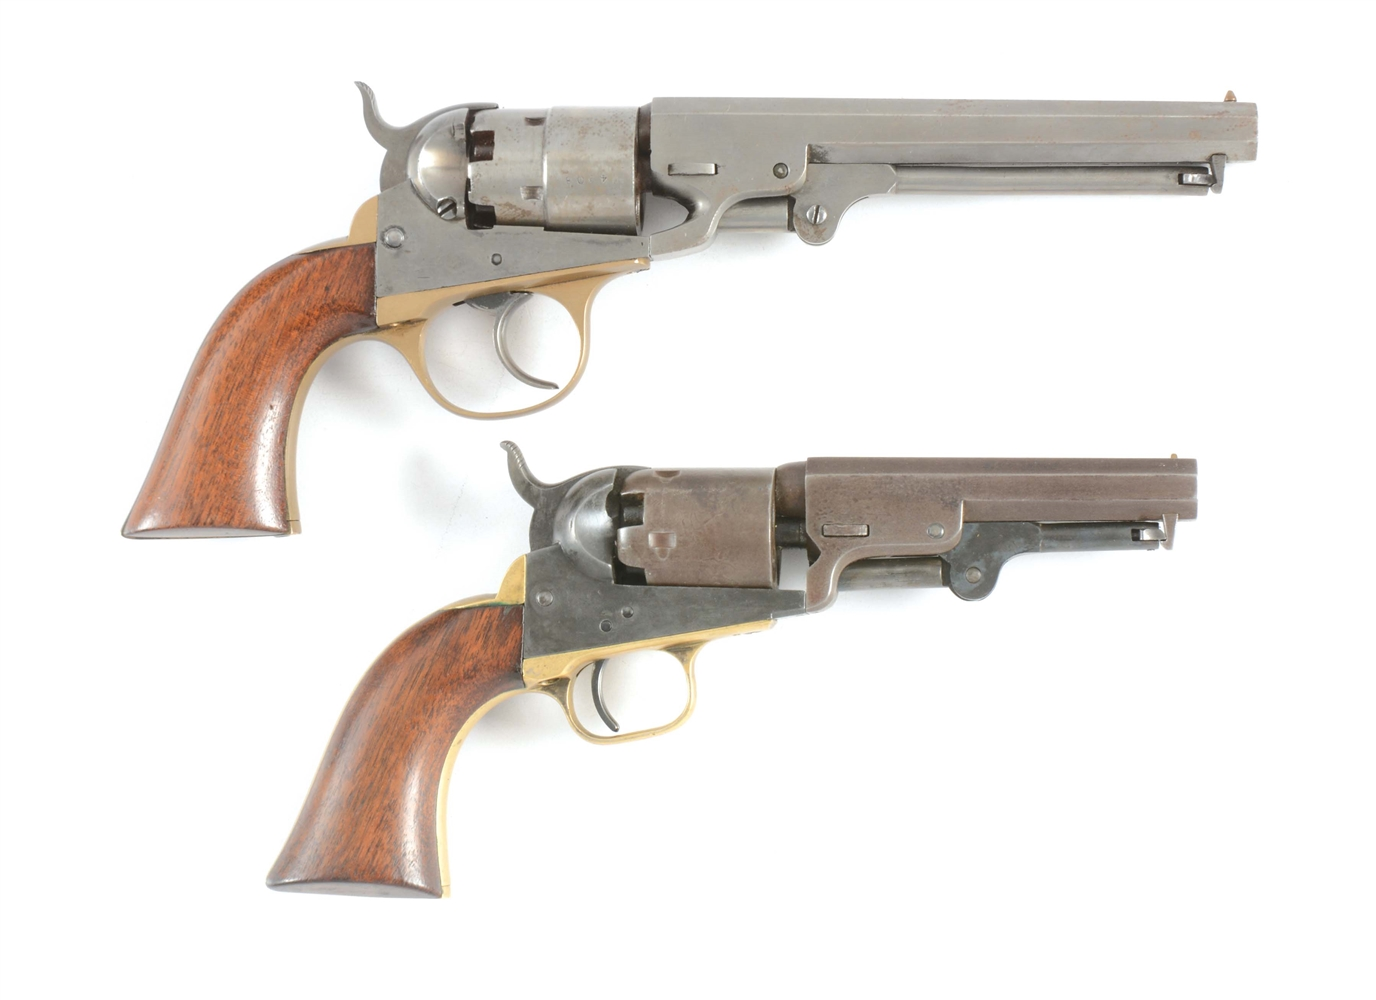 (A) LOT OF TWO PERCUSSION REVOLVERS: (A) COOPER 1860 .38 (B) COLT 1849 POCKET .31